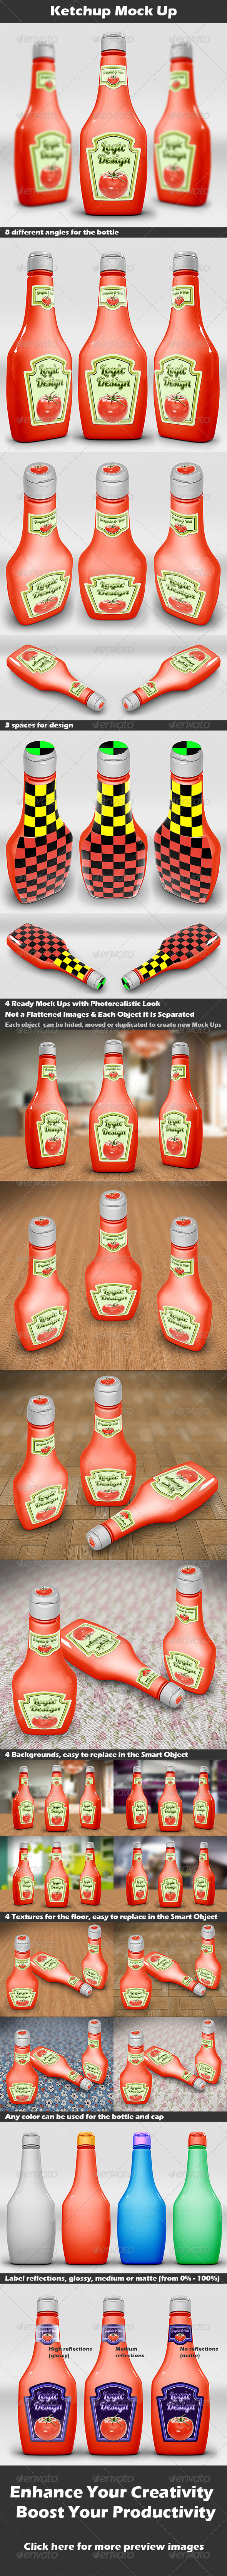 GraphicRiver Ketchup Mock Up 3795593